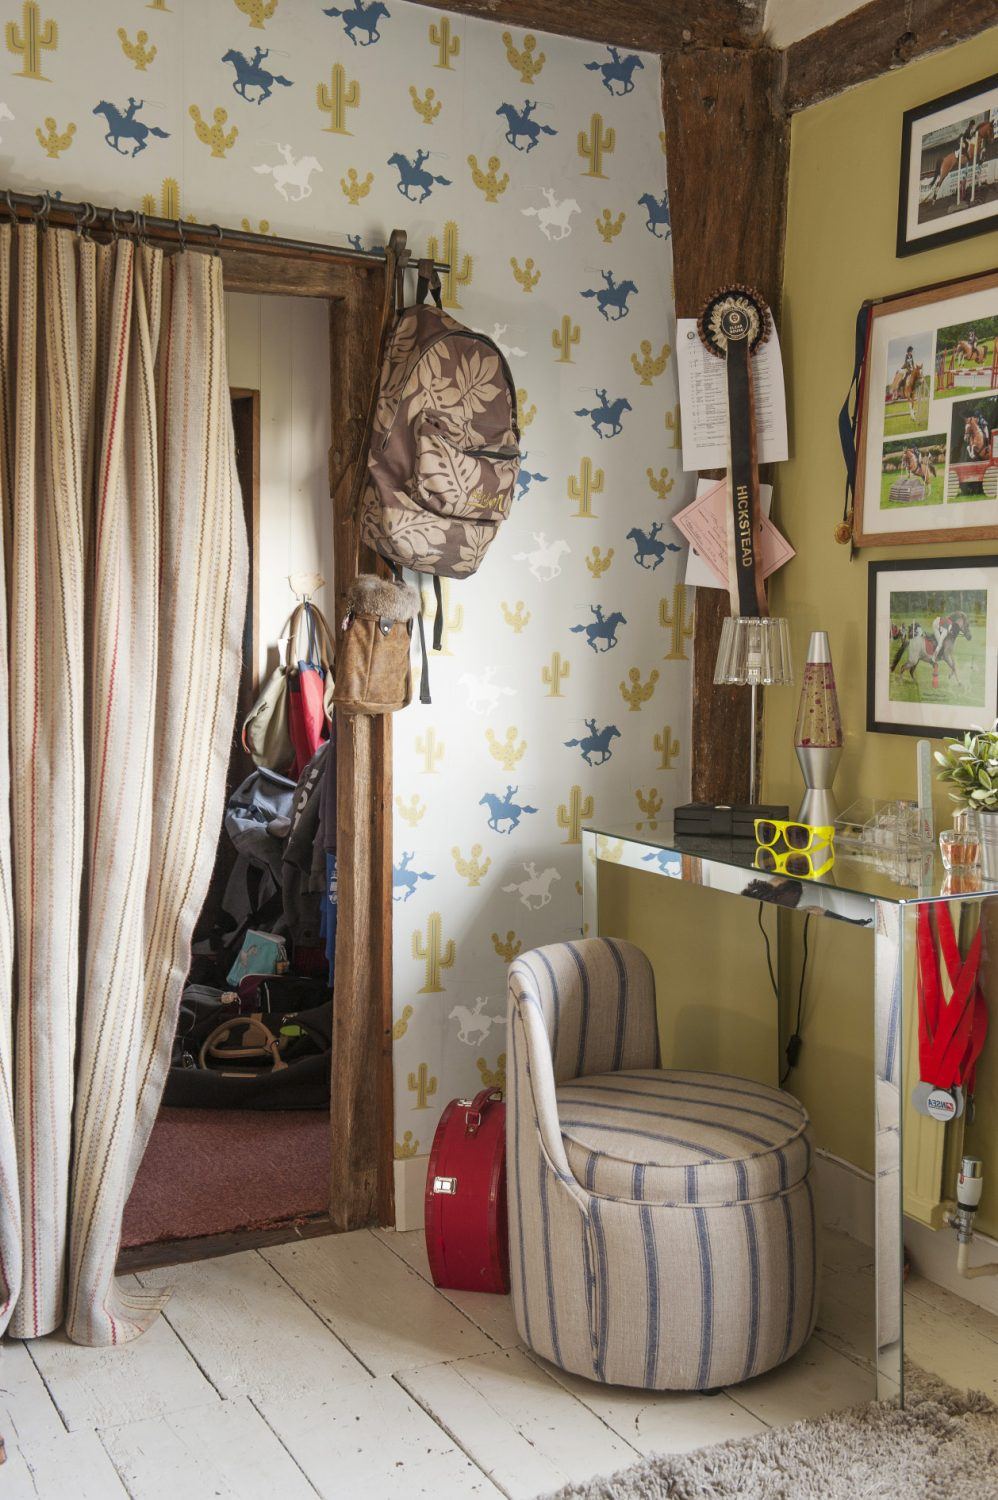 Tabby's room celebrates her love of horse riding